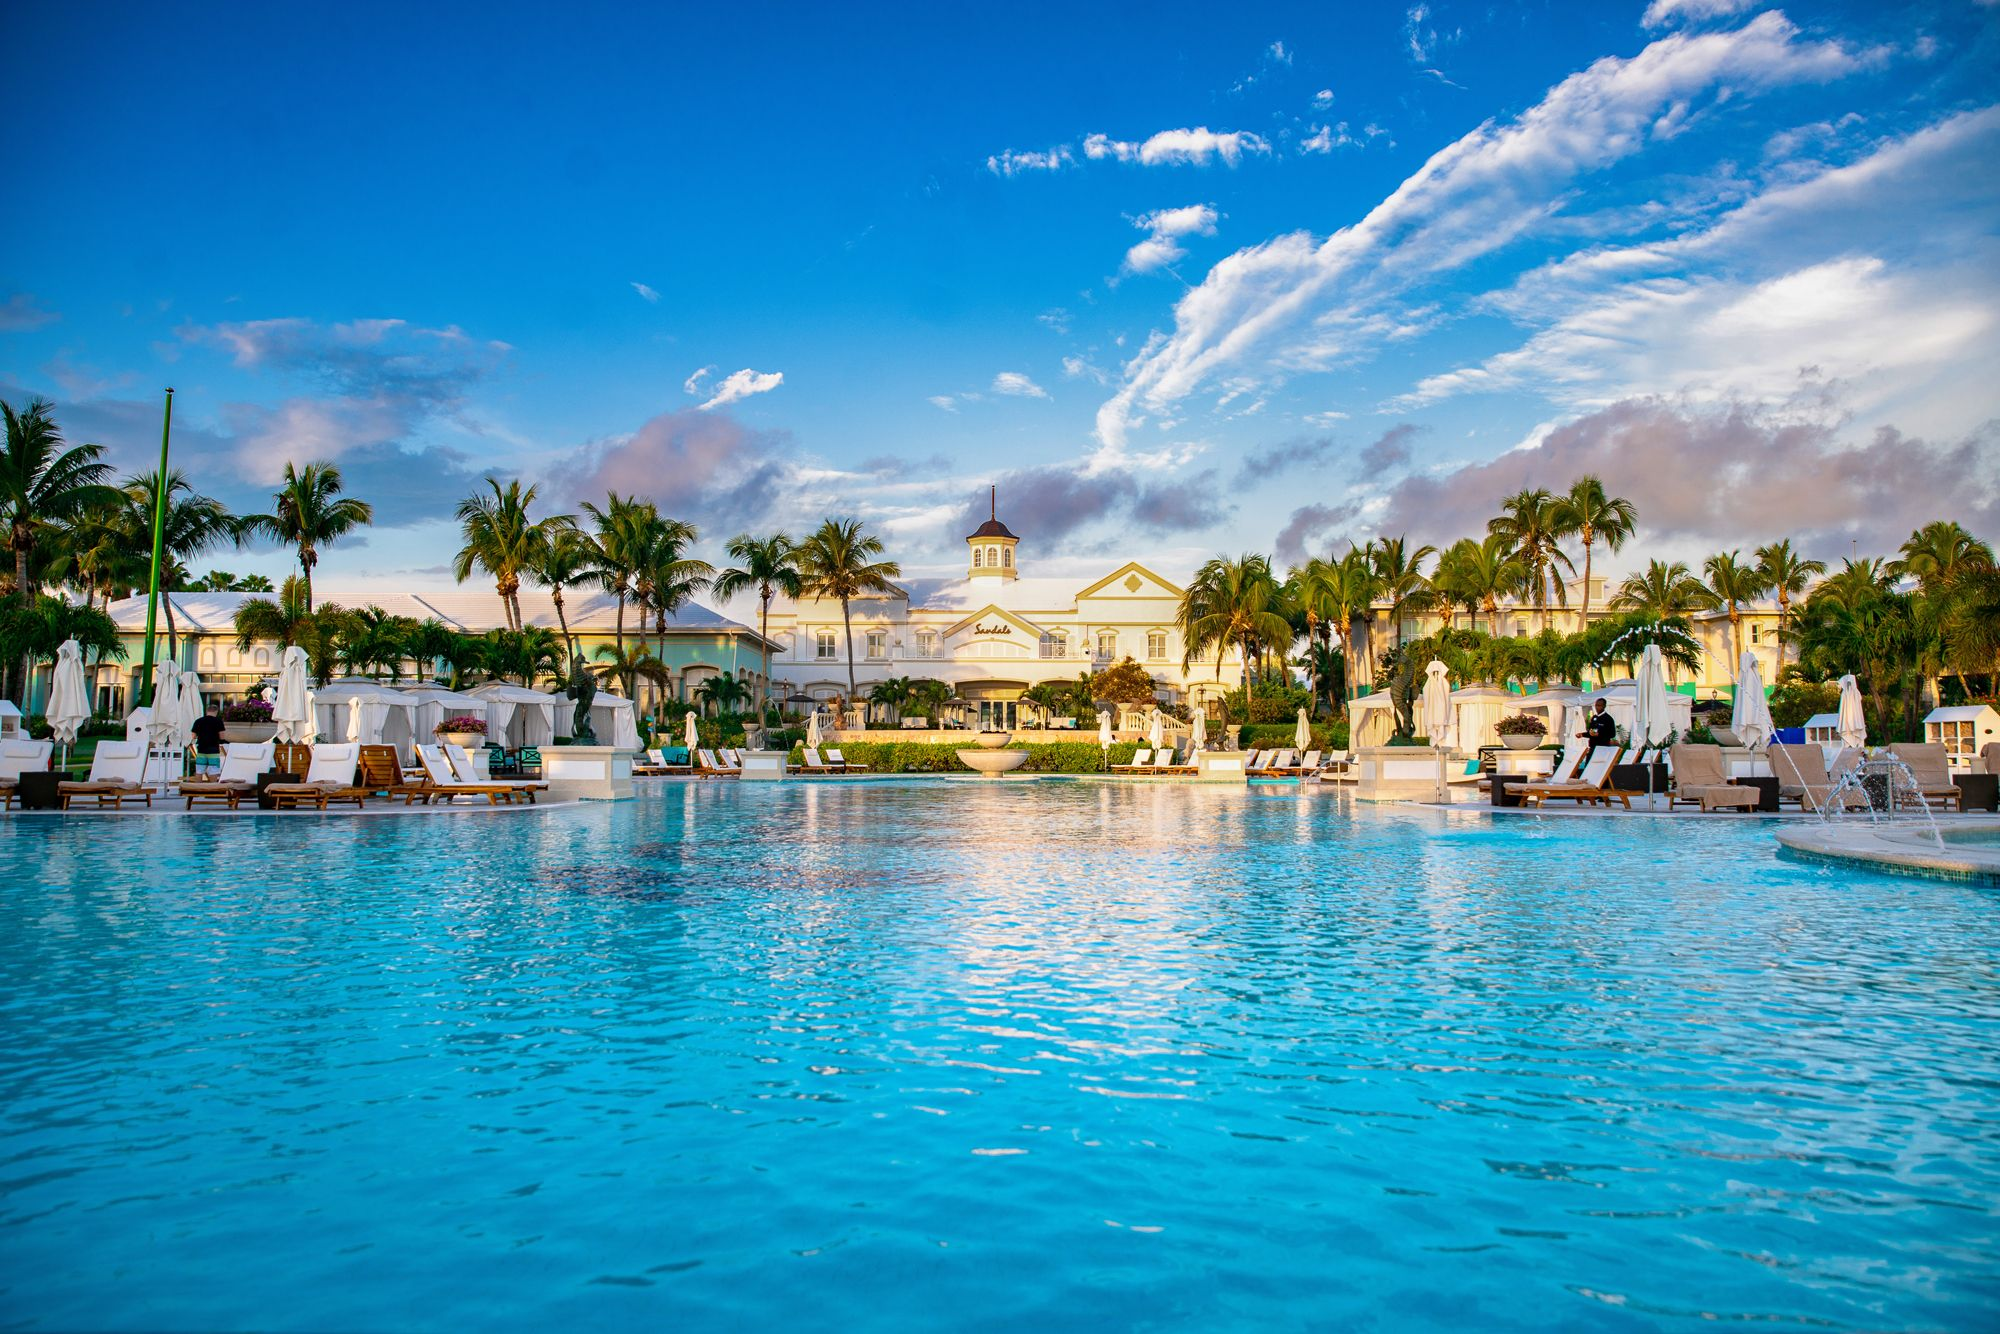 Sandals Emerald Bay Bahamas Main Pool